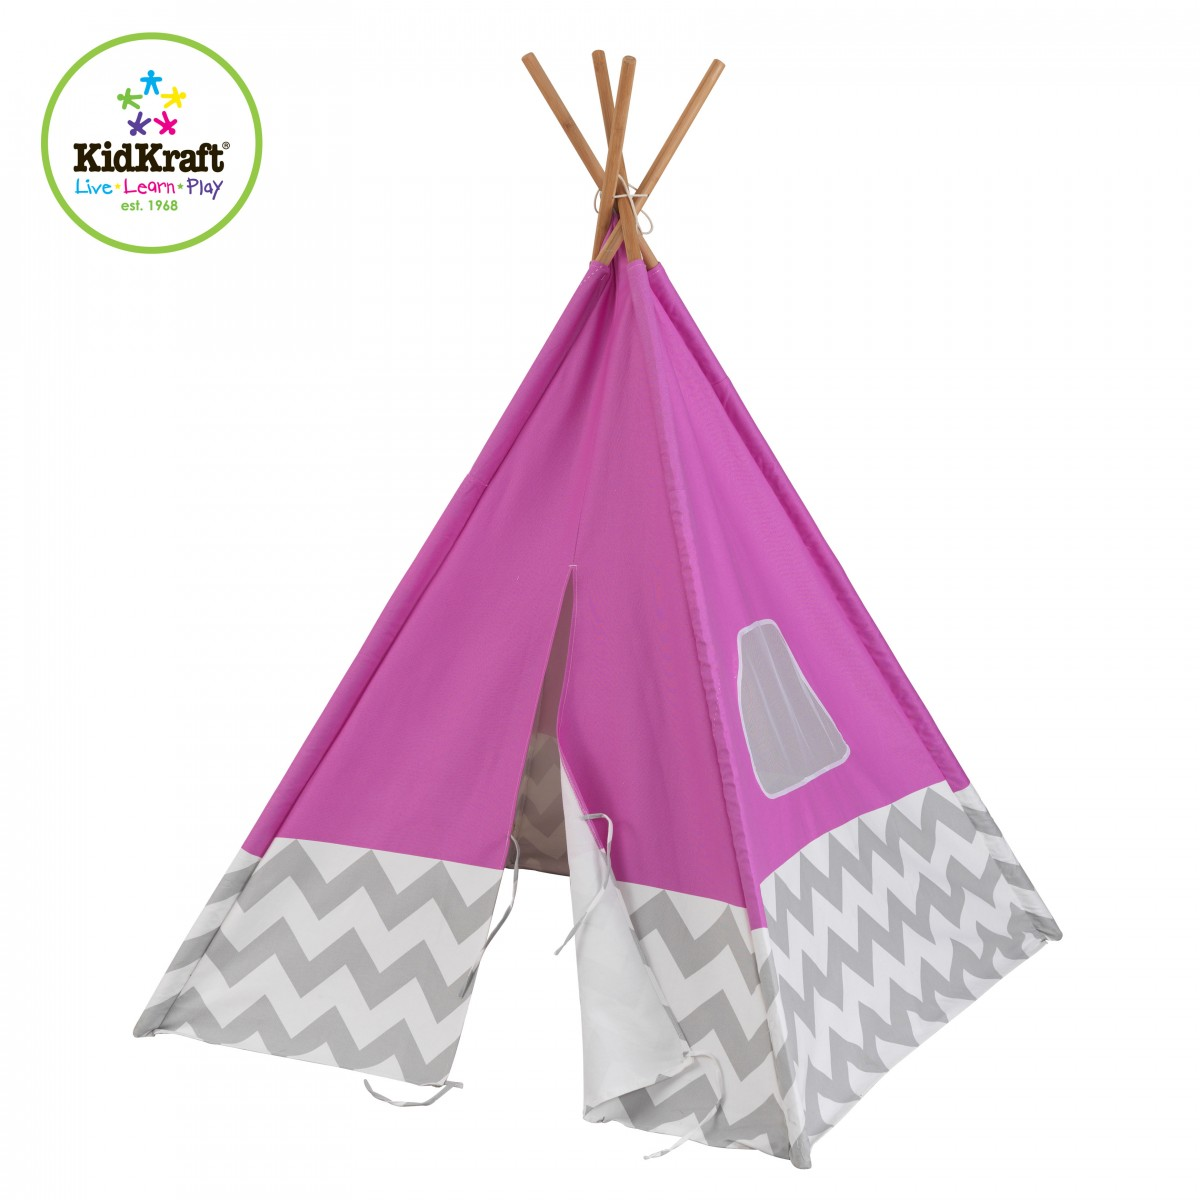 kinderzelt tipi pink von kidkraft beim holzspielzeug profi. Black Bedroom Furniture Sets. Home Design Ideas